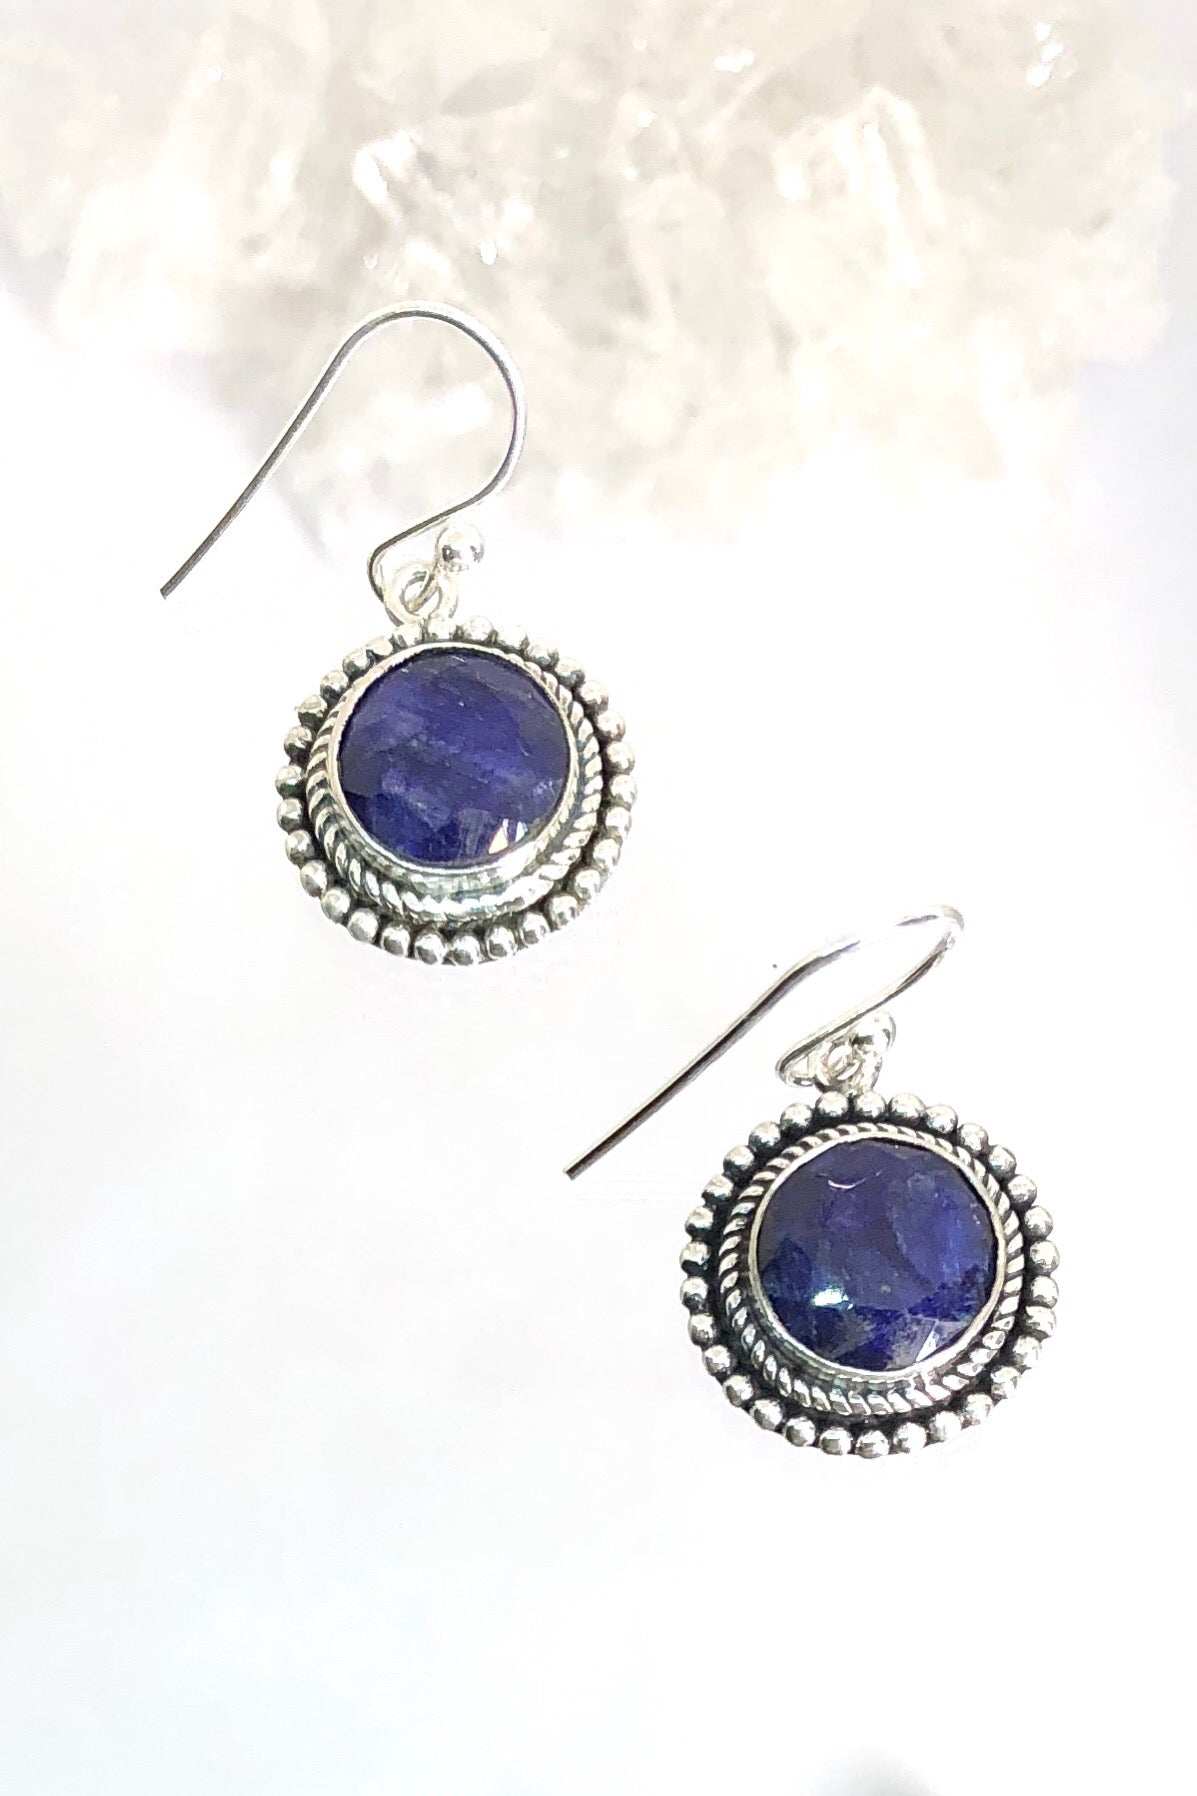 These deep and mysterious earrings feature a dark bezel set gemstone beneath silver swirls